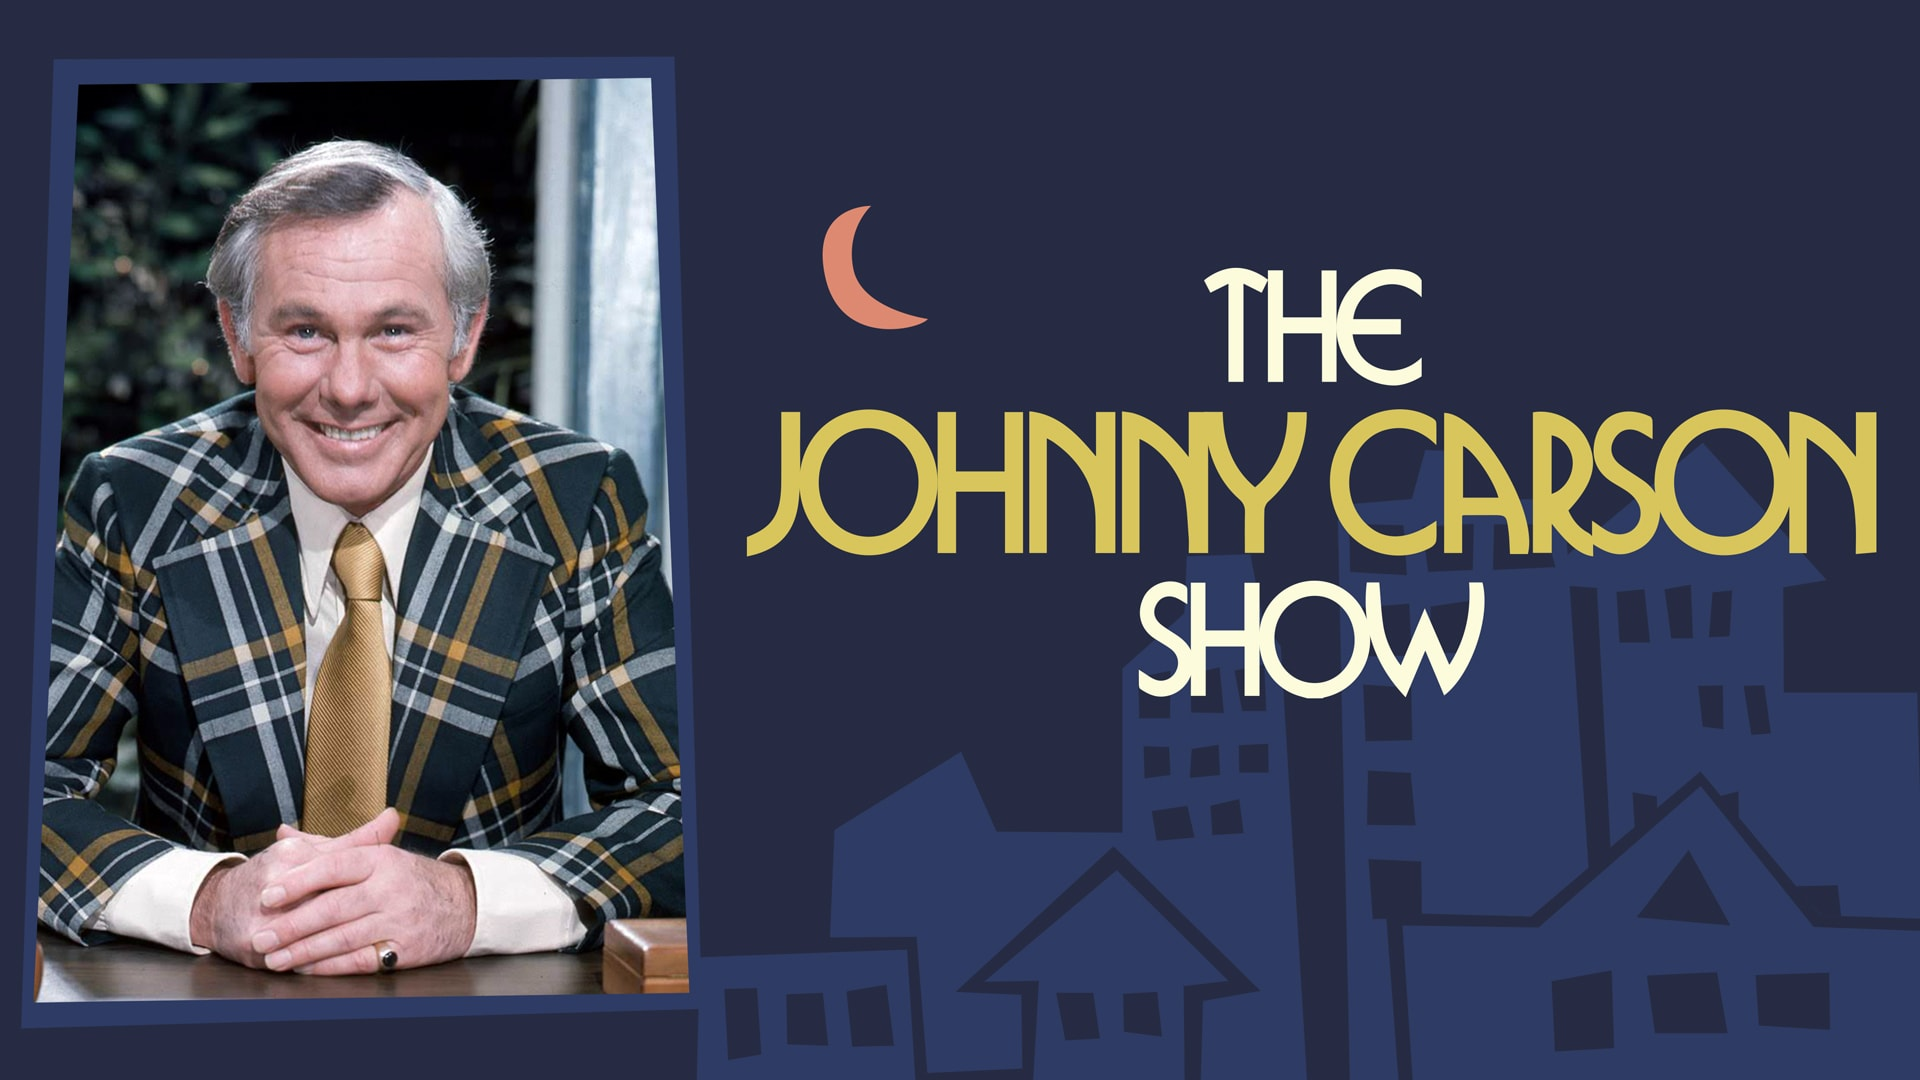 The Johnny Carson Show: Comic Legends Of The '60s - Joan Rivers (5/20/75)